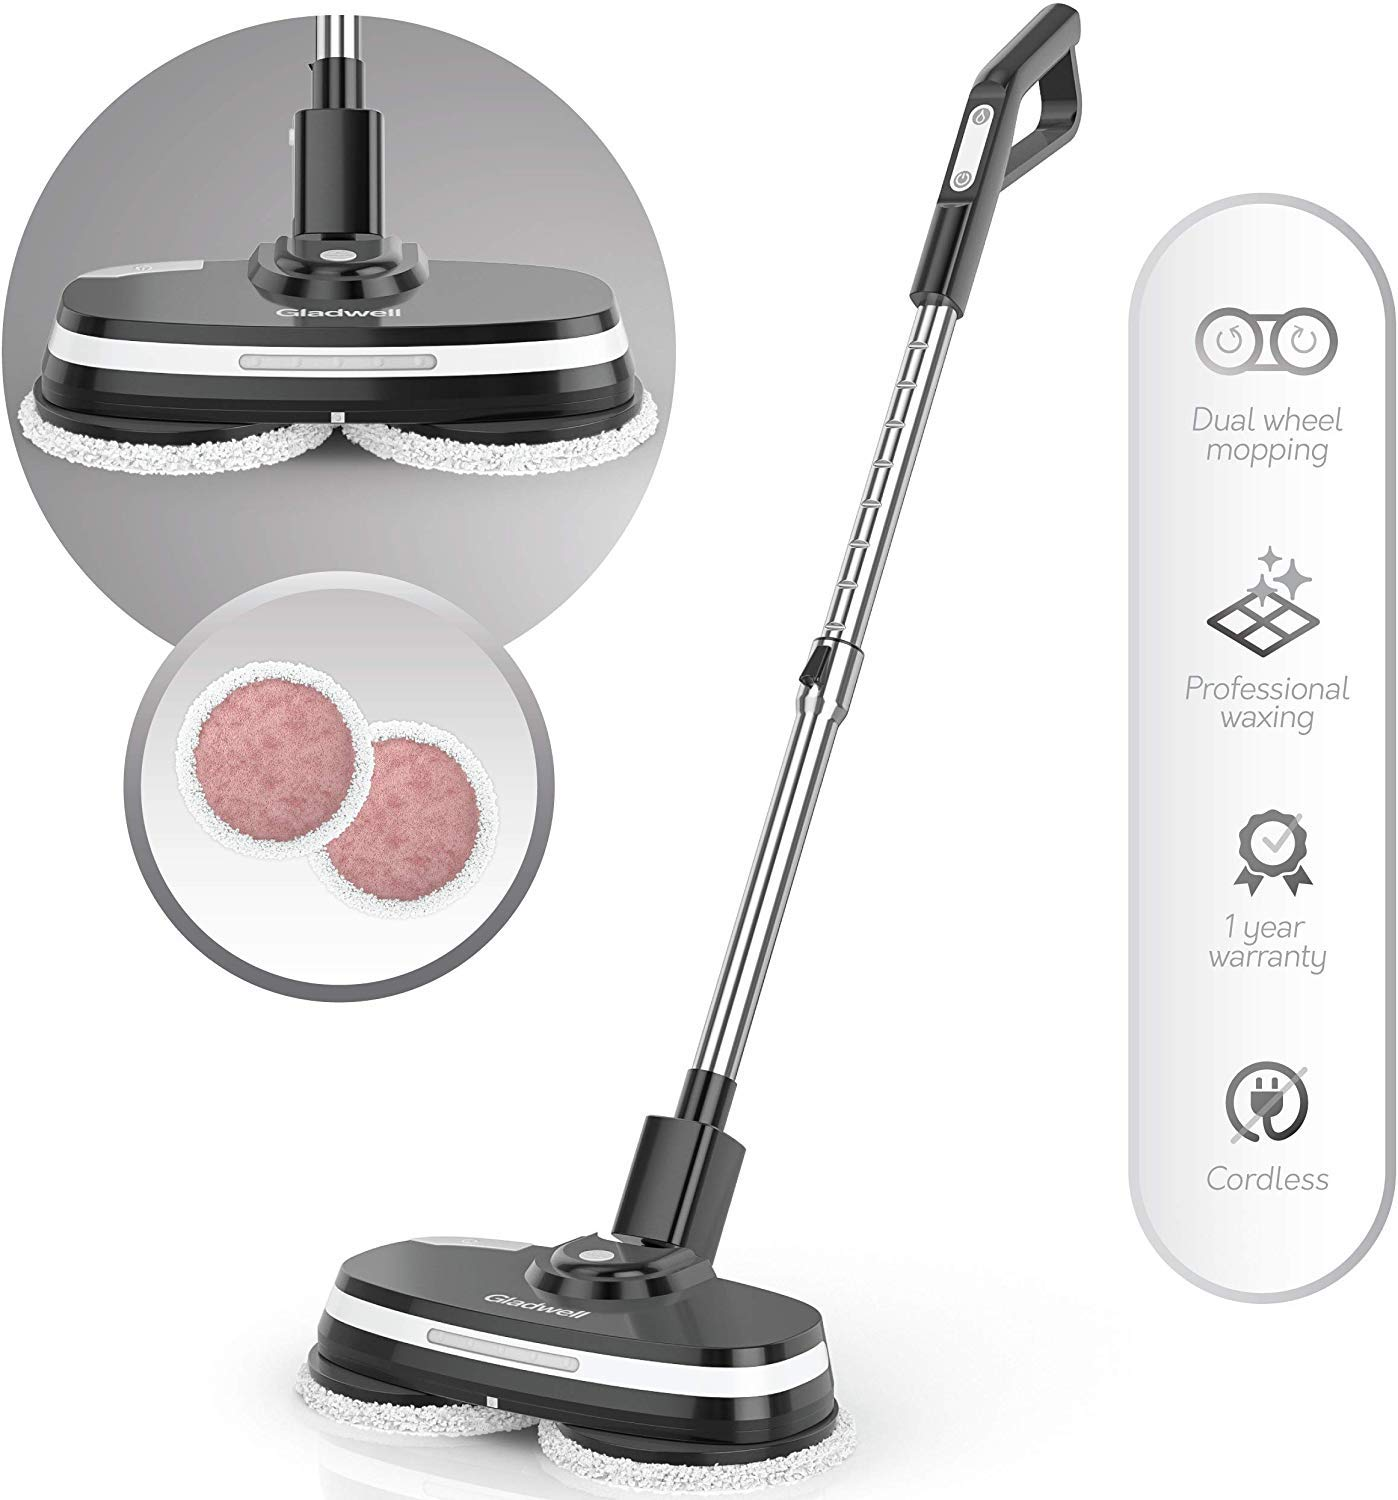 Gladwell Cordless Electric Mop, 3 in 1 Spinner, Scrubber, Waxer Quiet, Powerful Cleaner Spin Scrubber and Buffer, Polisher for Hard Wood, Tile, Vinyl, Marble, Laminate Floor, Black